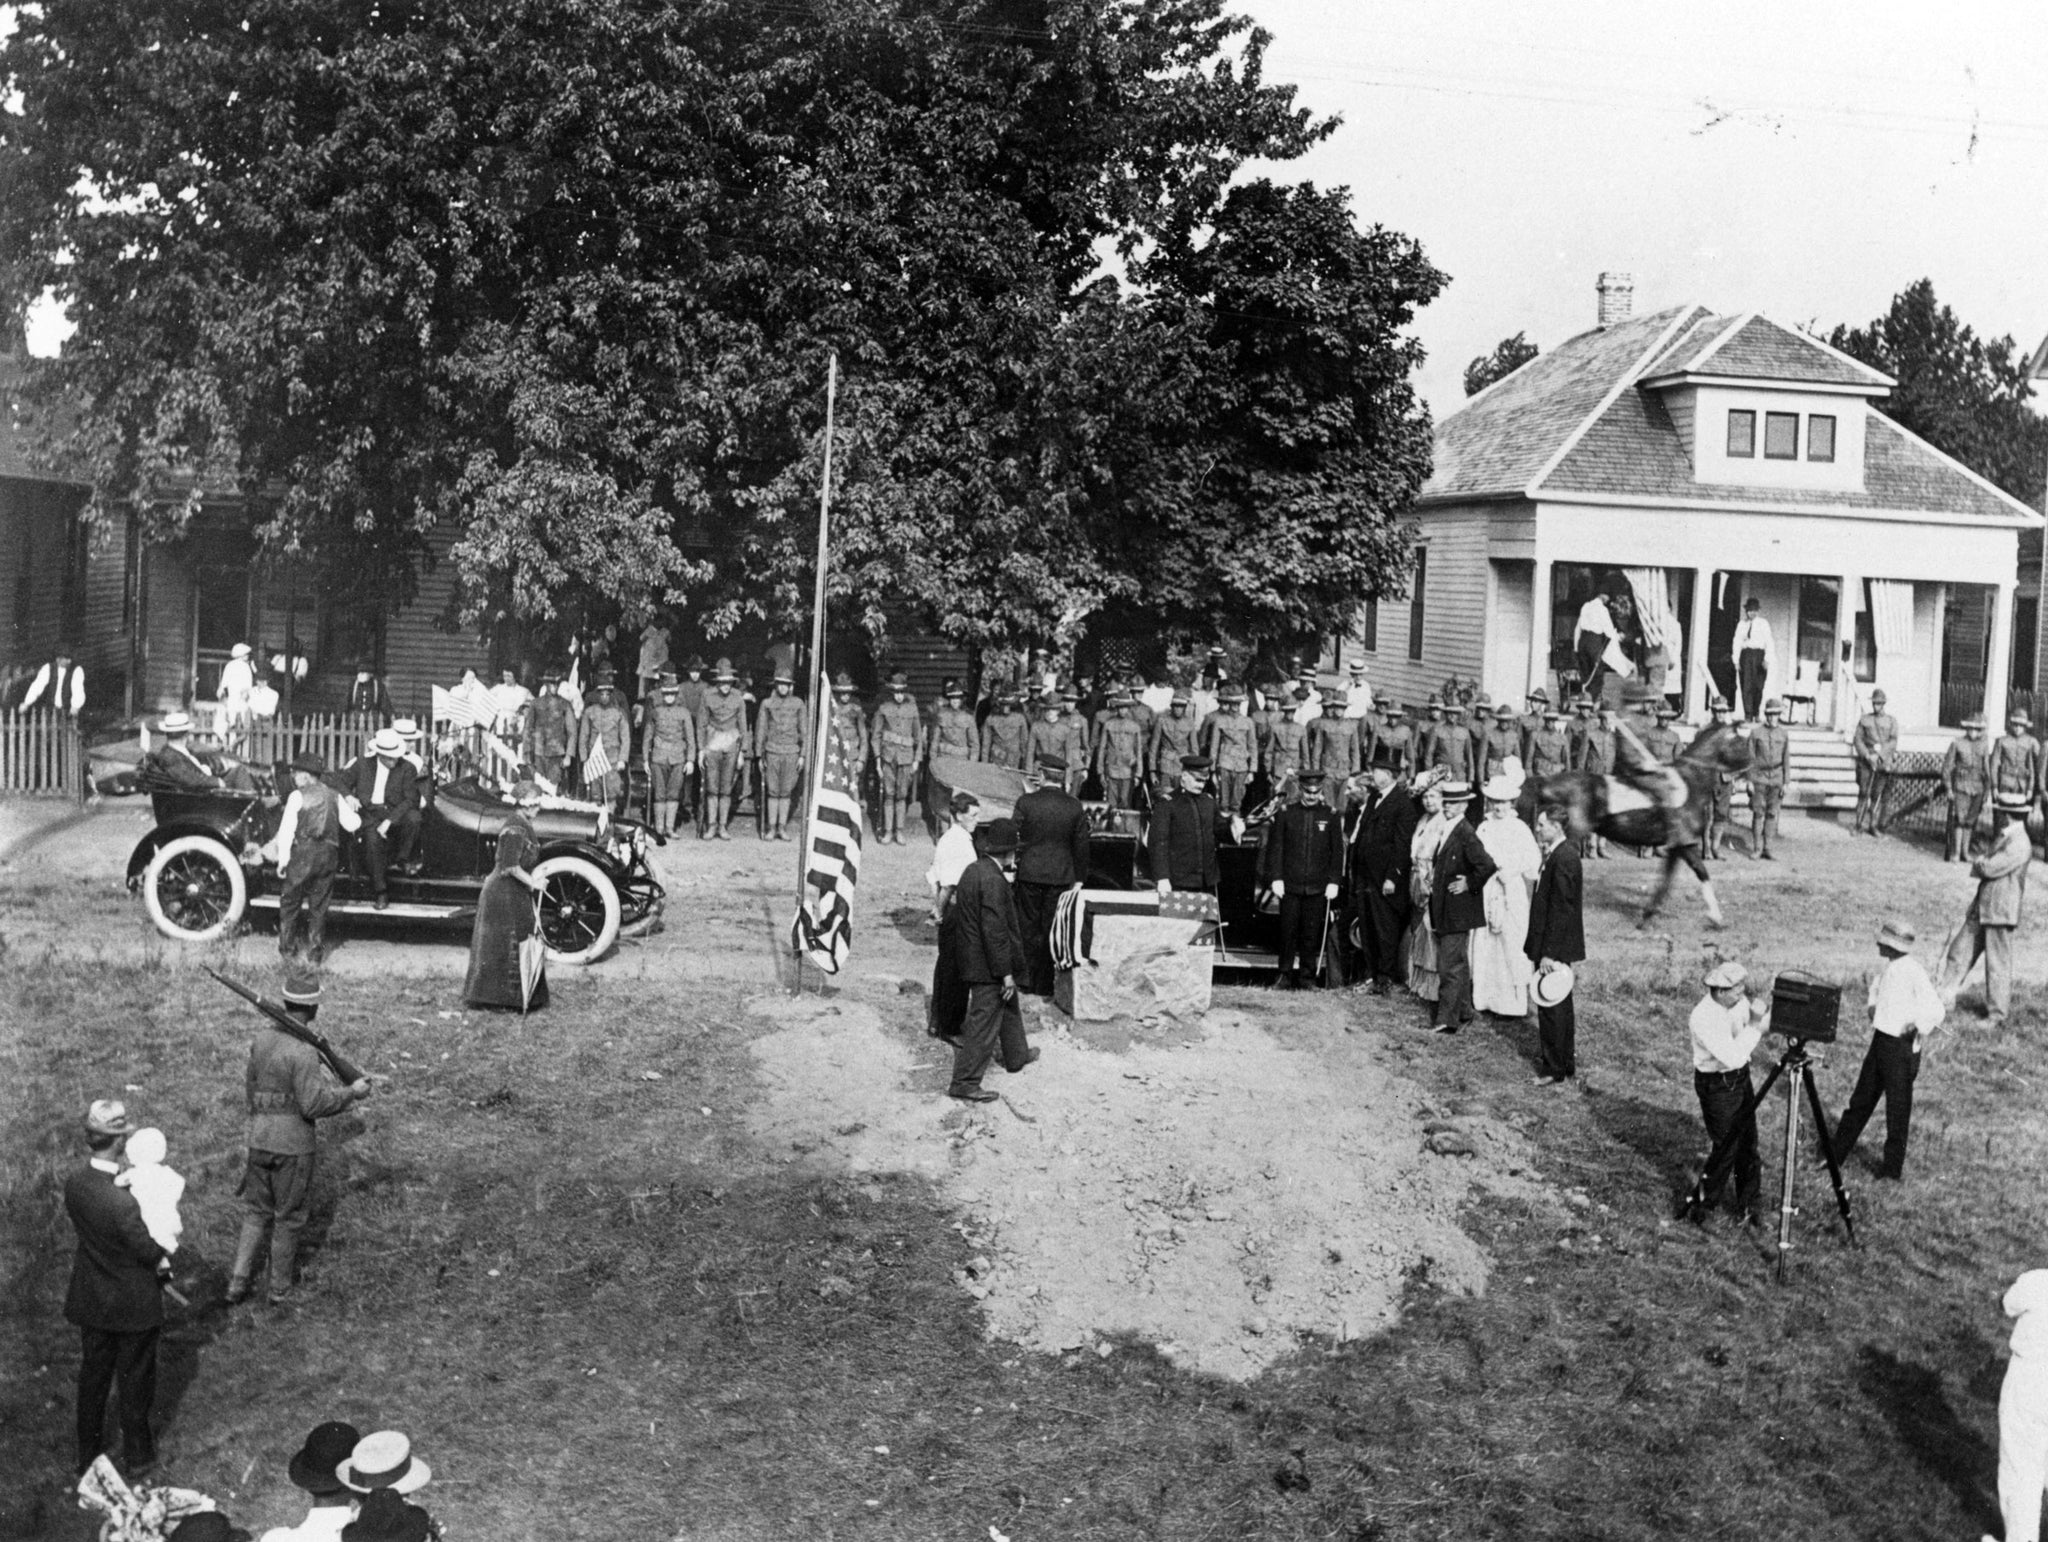 The arrival of Governor Dunn for the Logan Day festivities, August 3, 1914. This took place at General John A. Logan's birthplace in Murphysboro. -- Courtesy Jackson County Historical Society / #1008